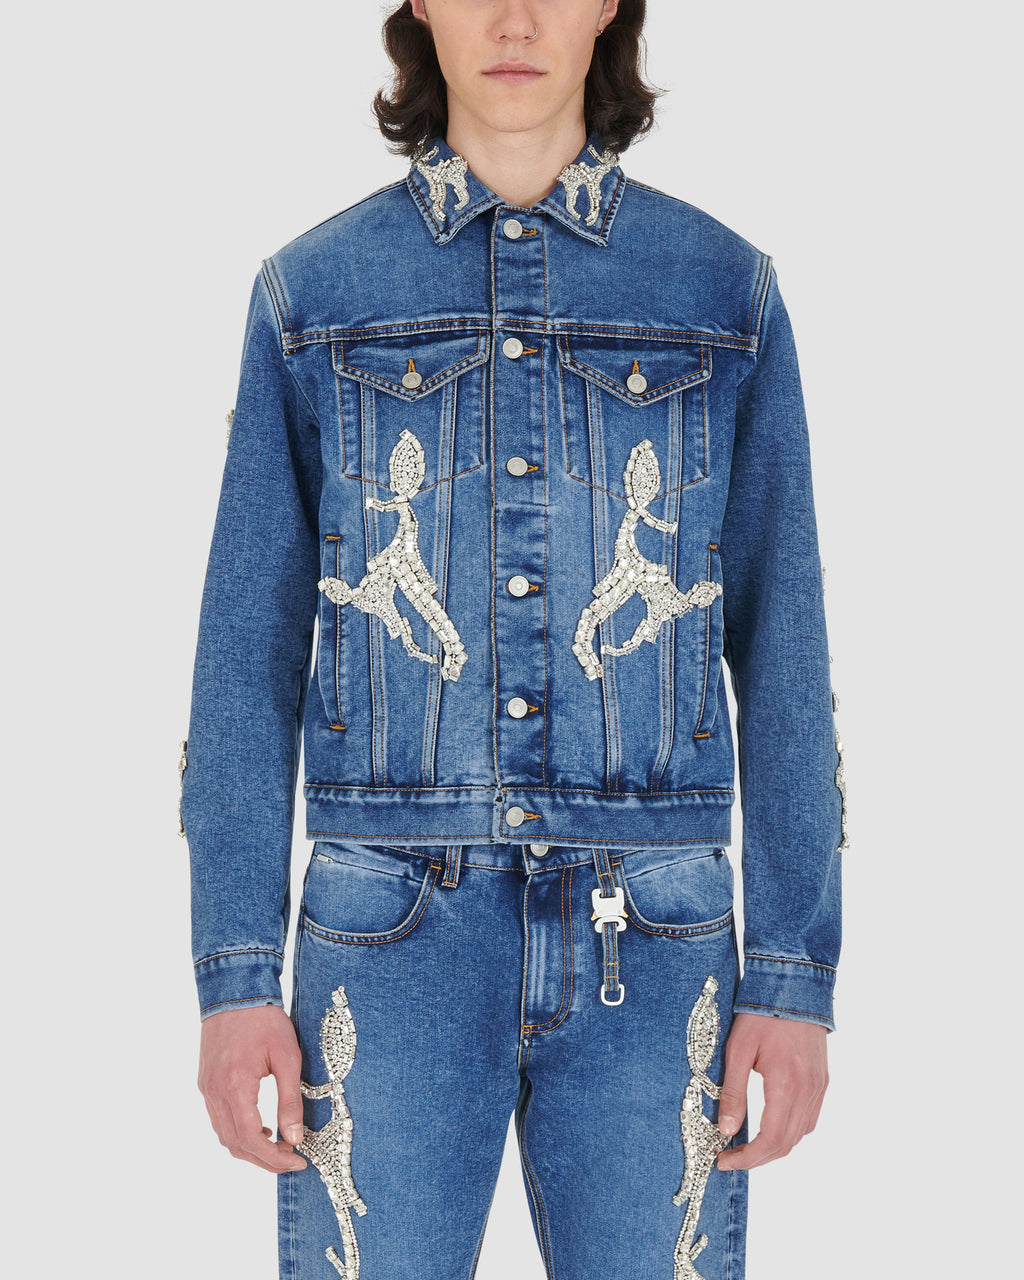 CLASSIC DENIM JACKET WITH DIAMANTI RUNWAY MADE TO ORDER